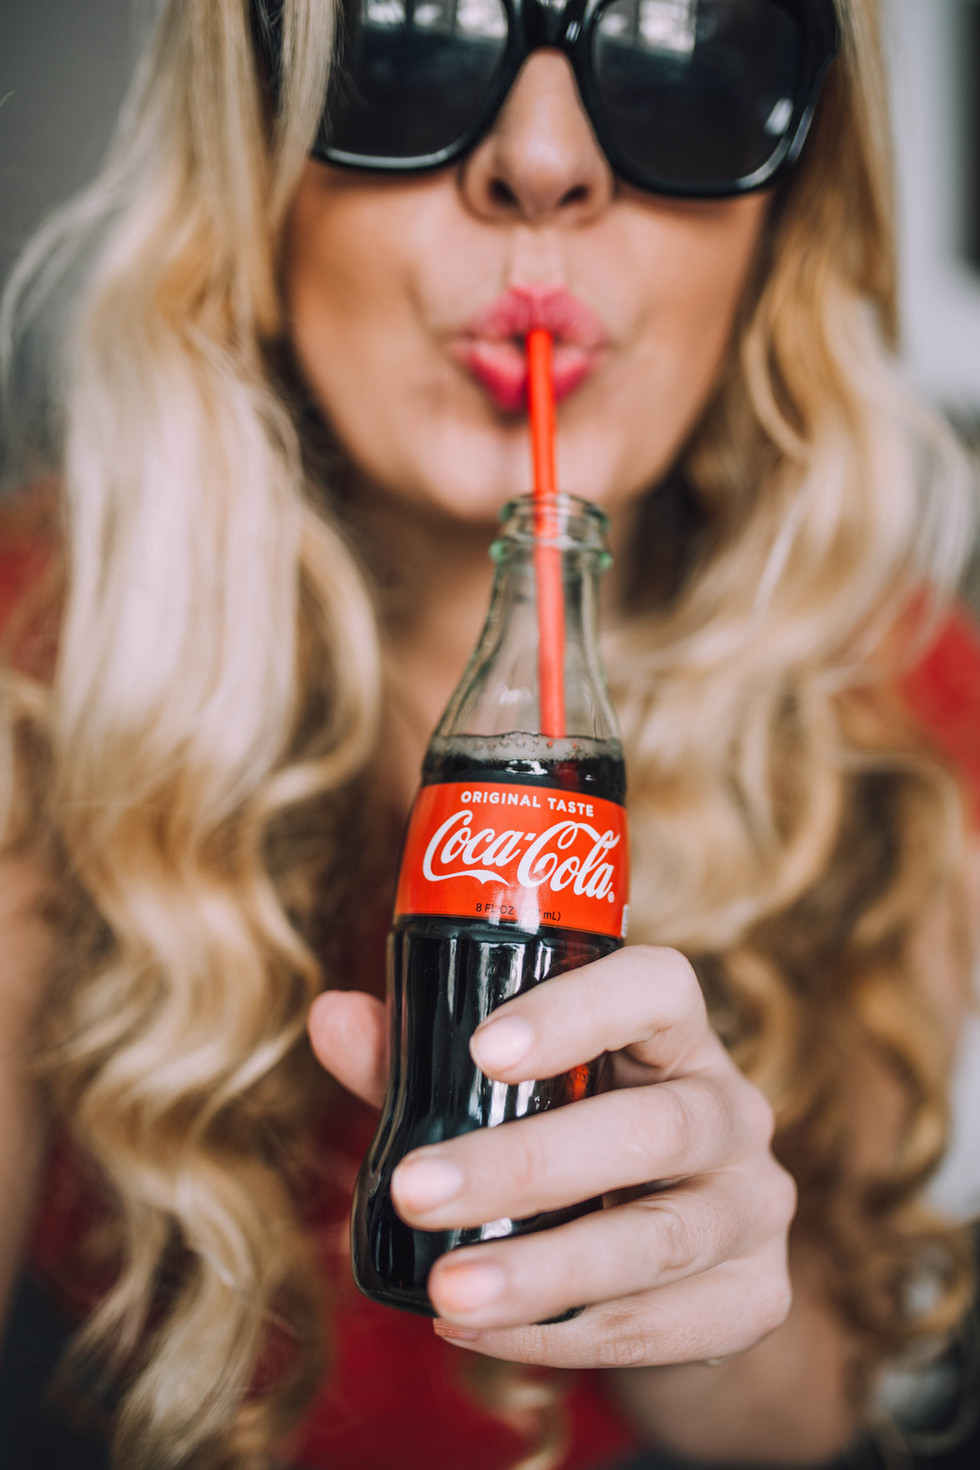 Commercial photoshoot for Coca-Cola